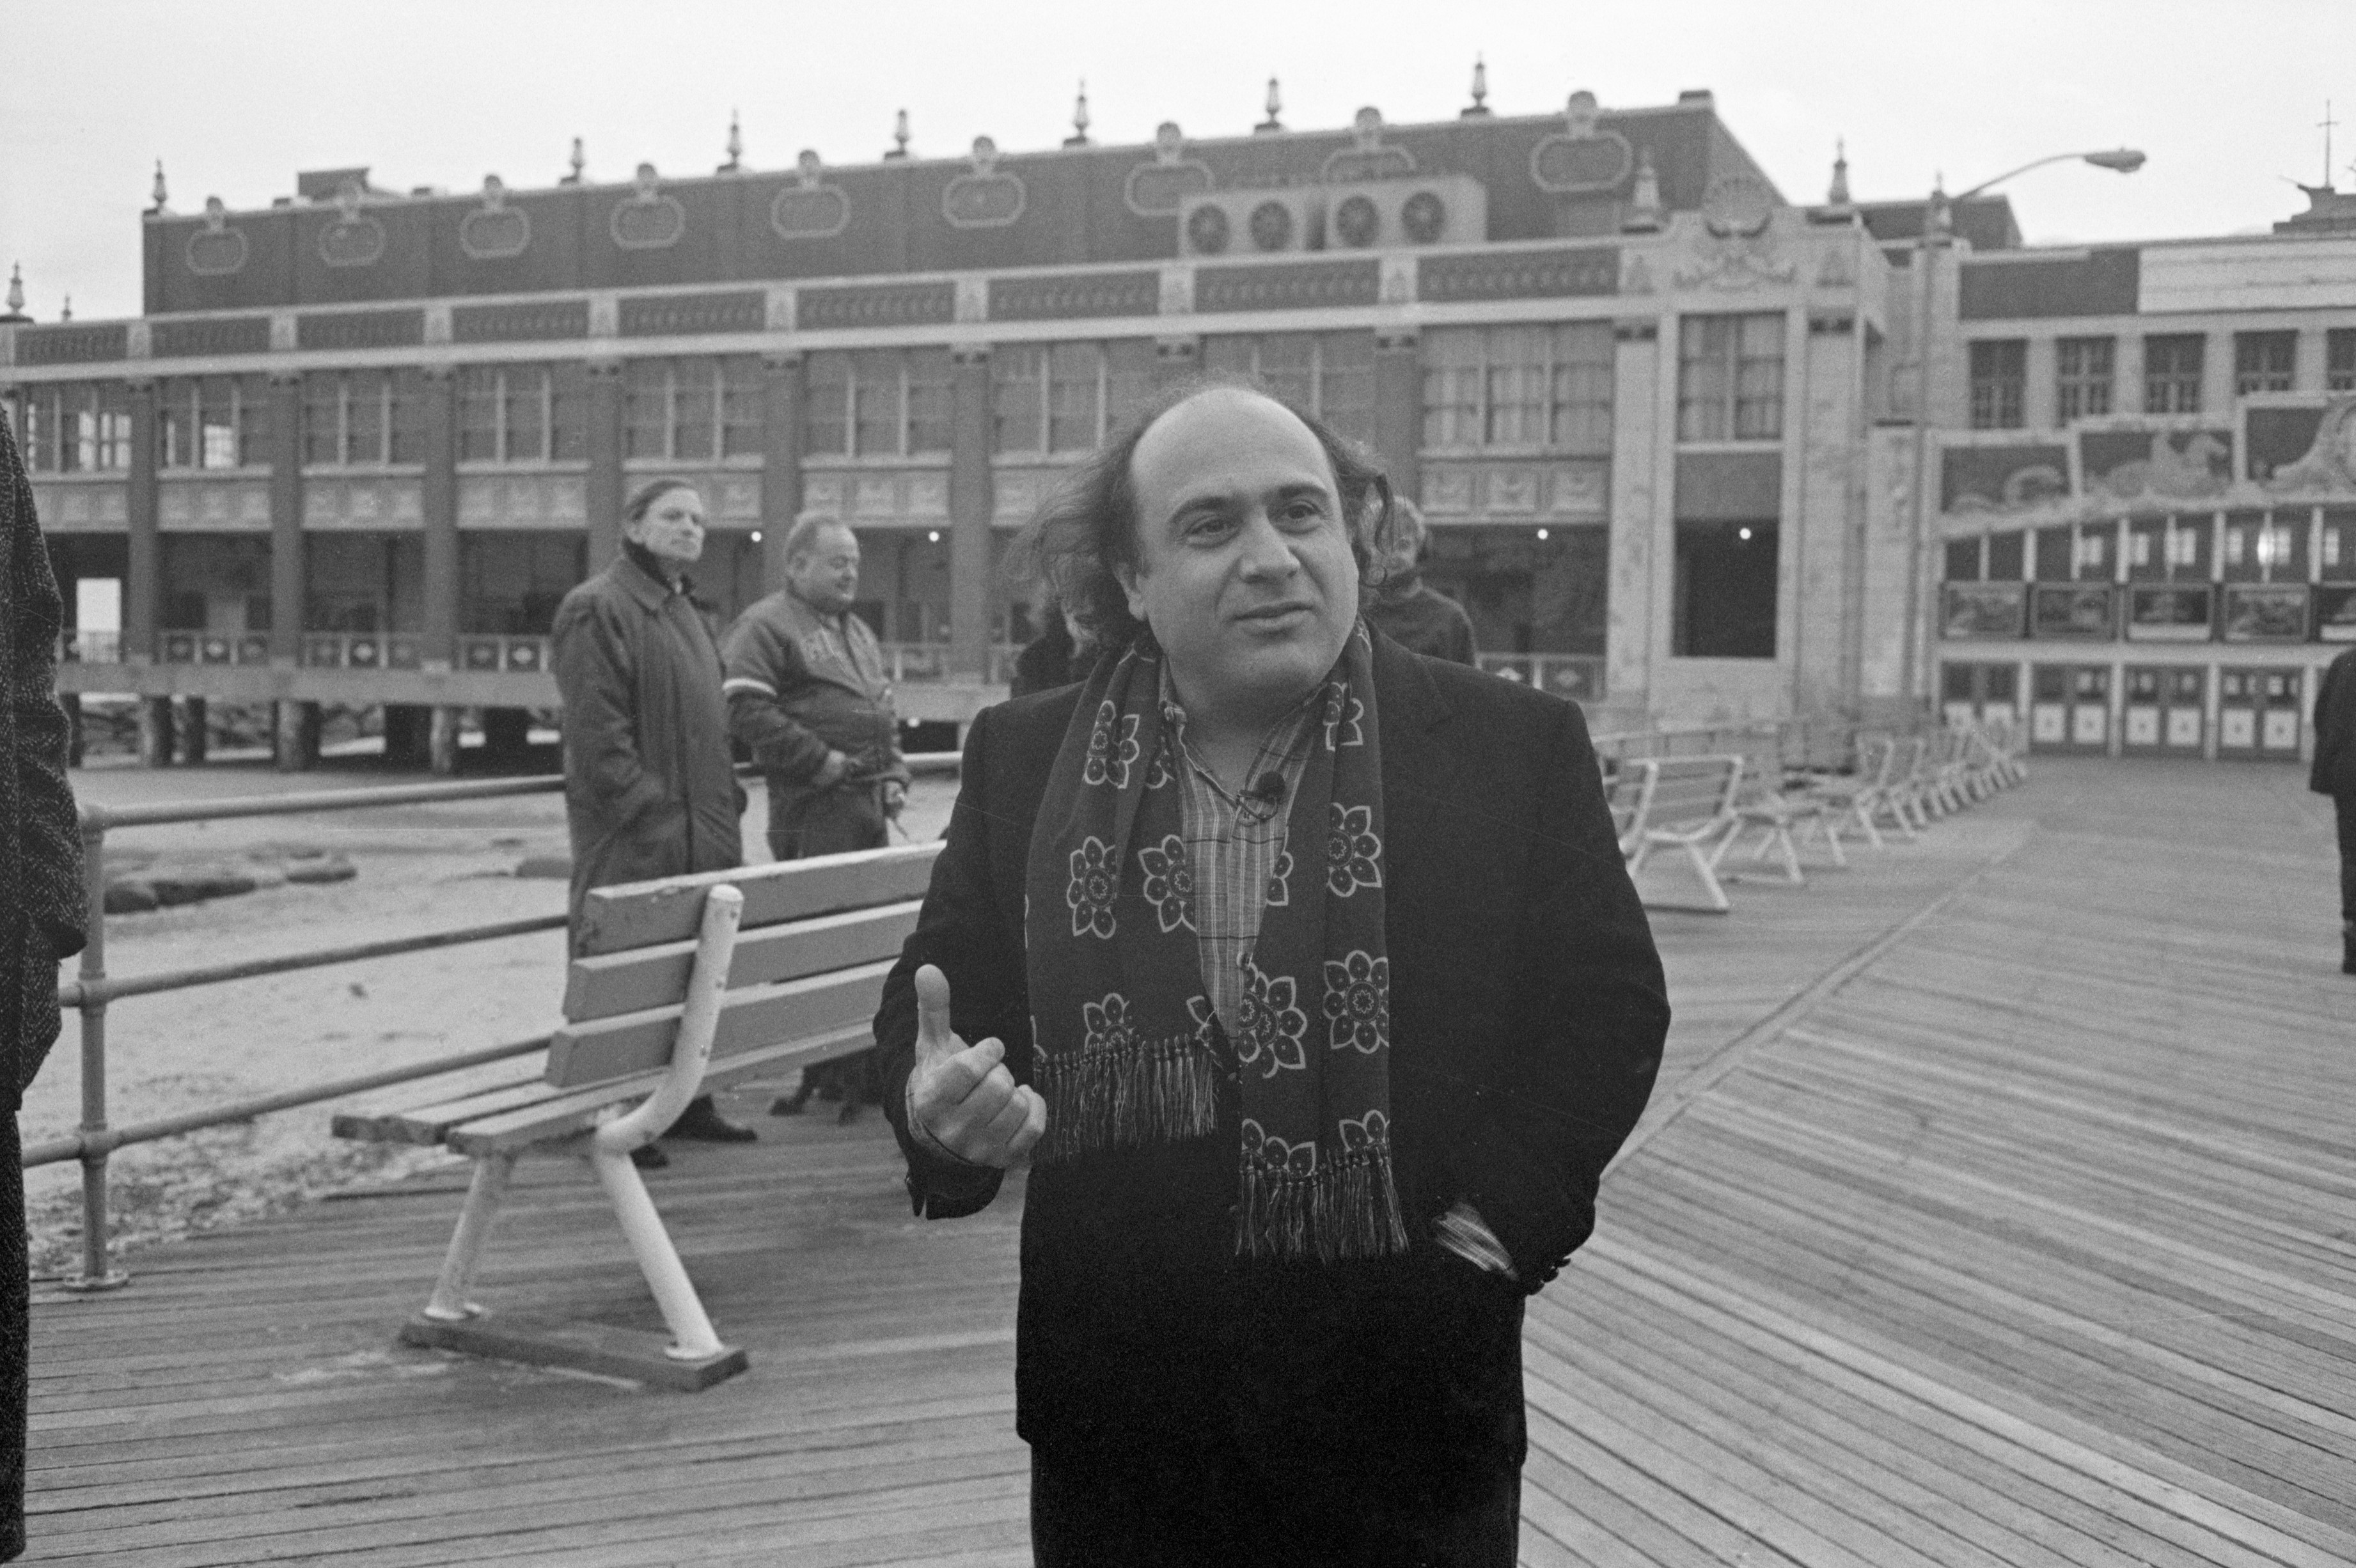 Danny DeVito at 70: A National Treasure on Sex, Drugs and ...